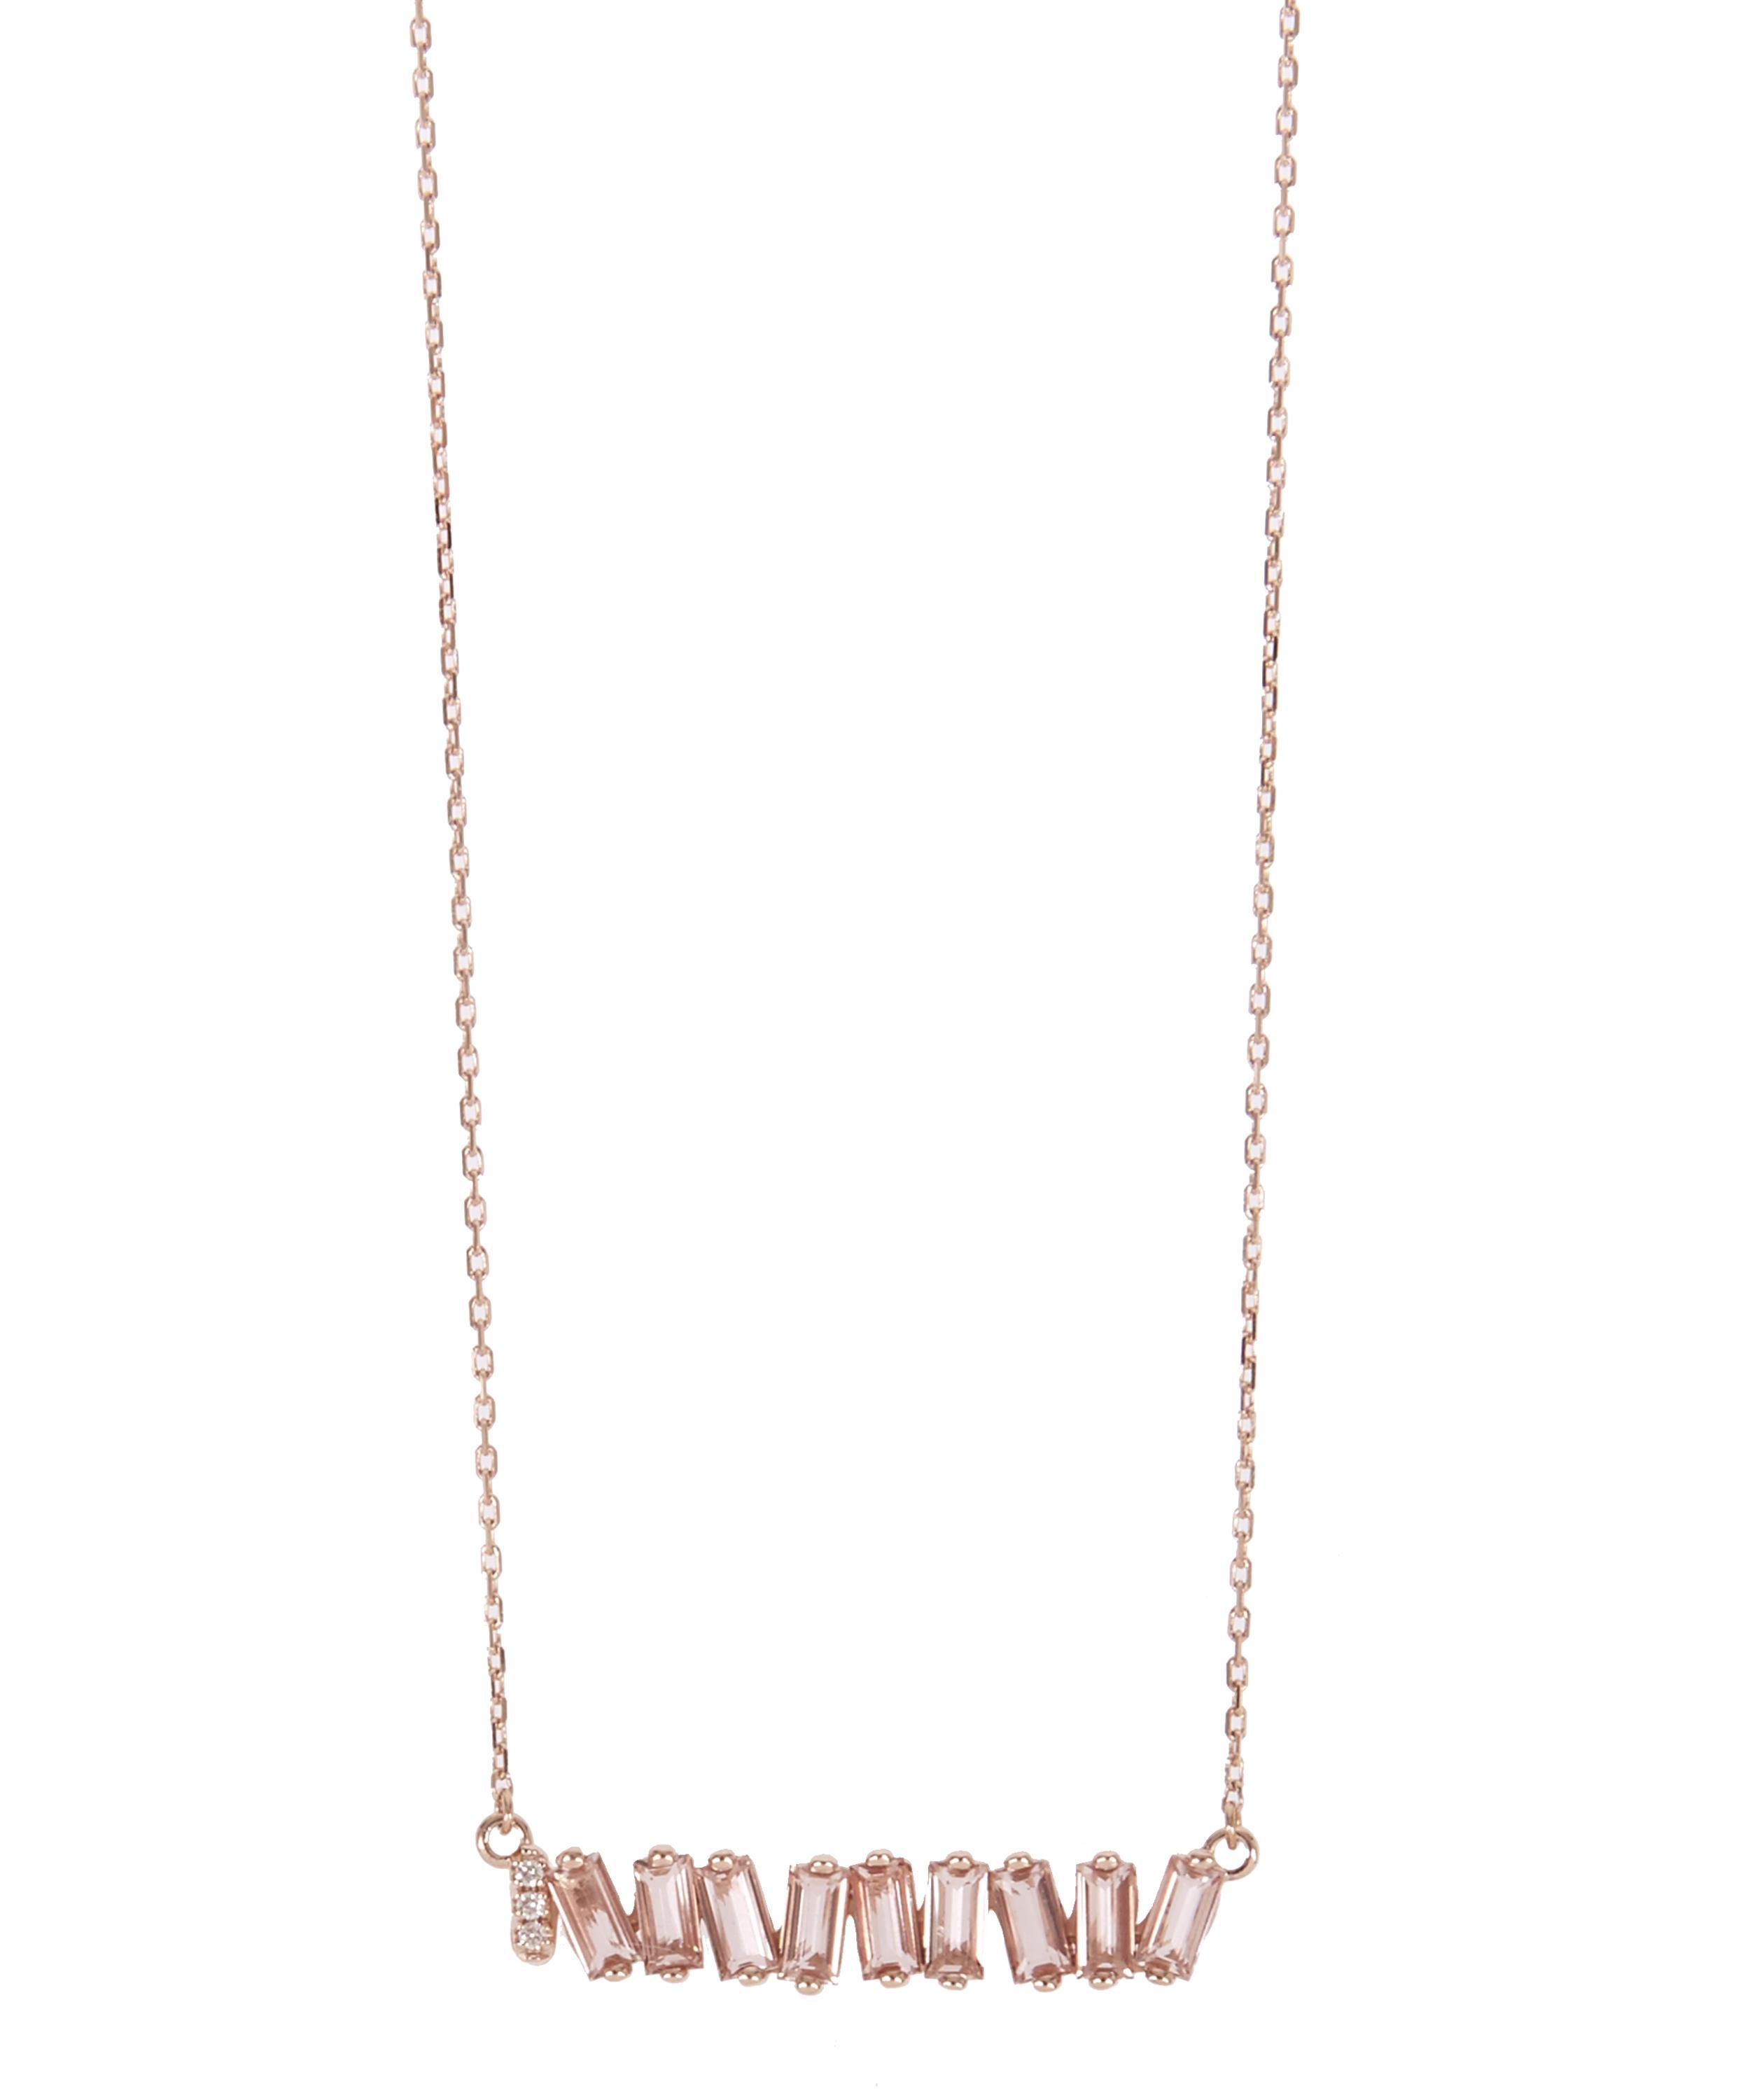 jewellers pendant morganite and white with image chain quot avanti necklaces gold womens diamond